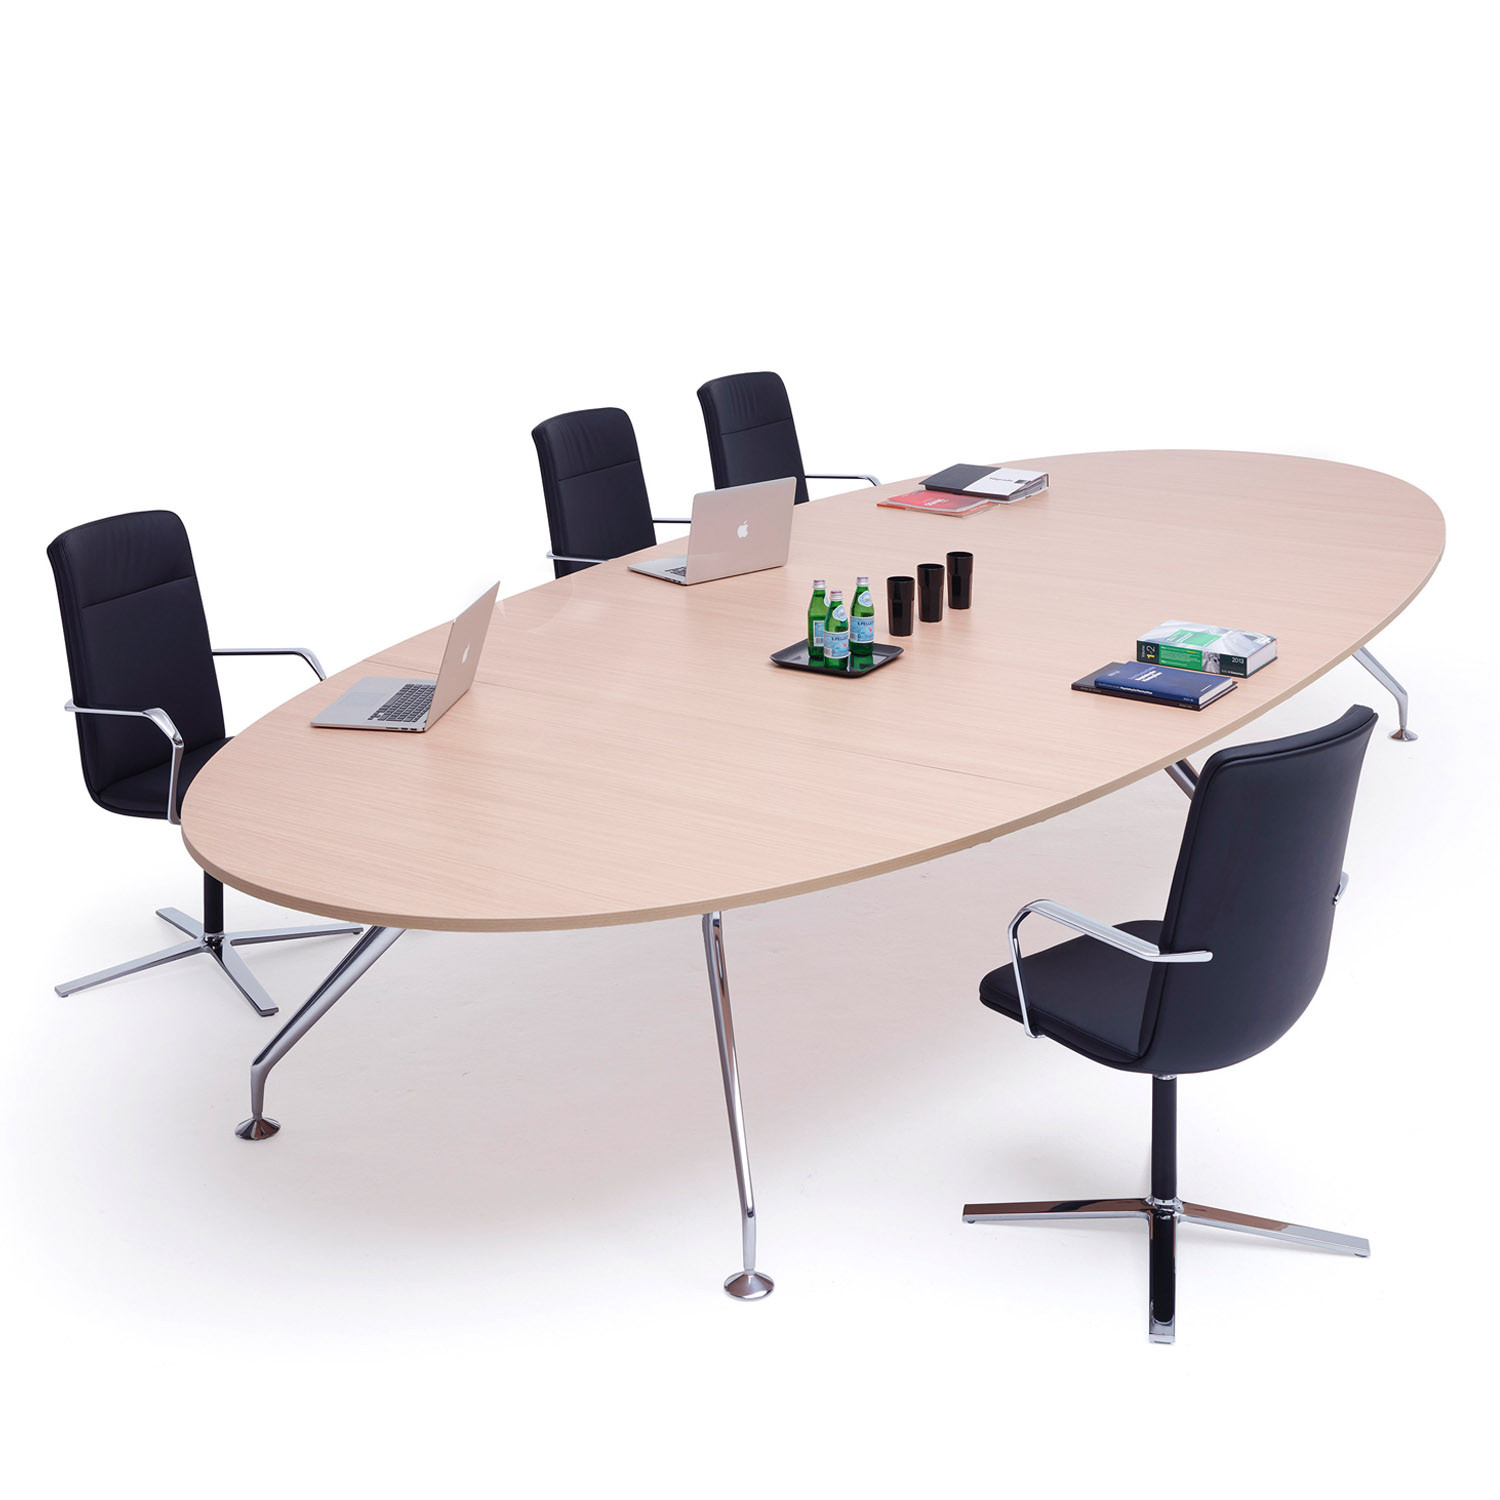 Lano Oval Meeting Table